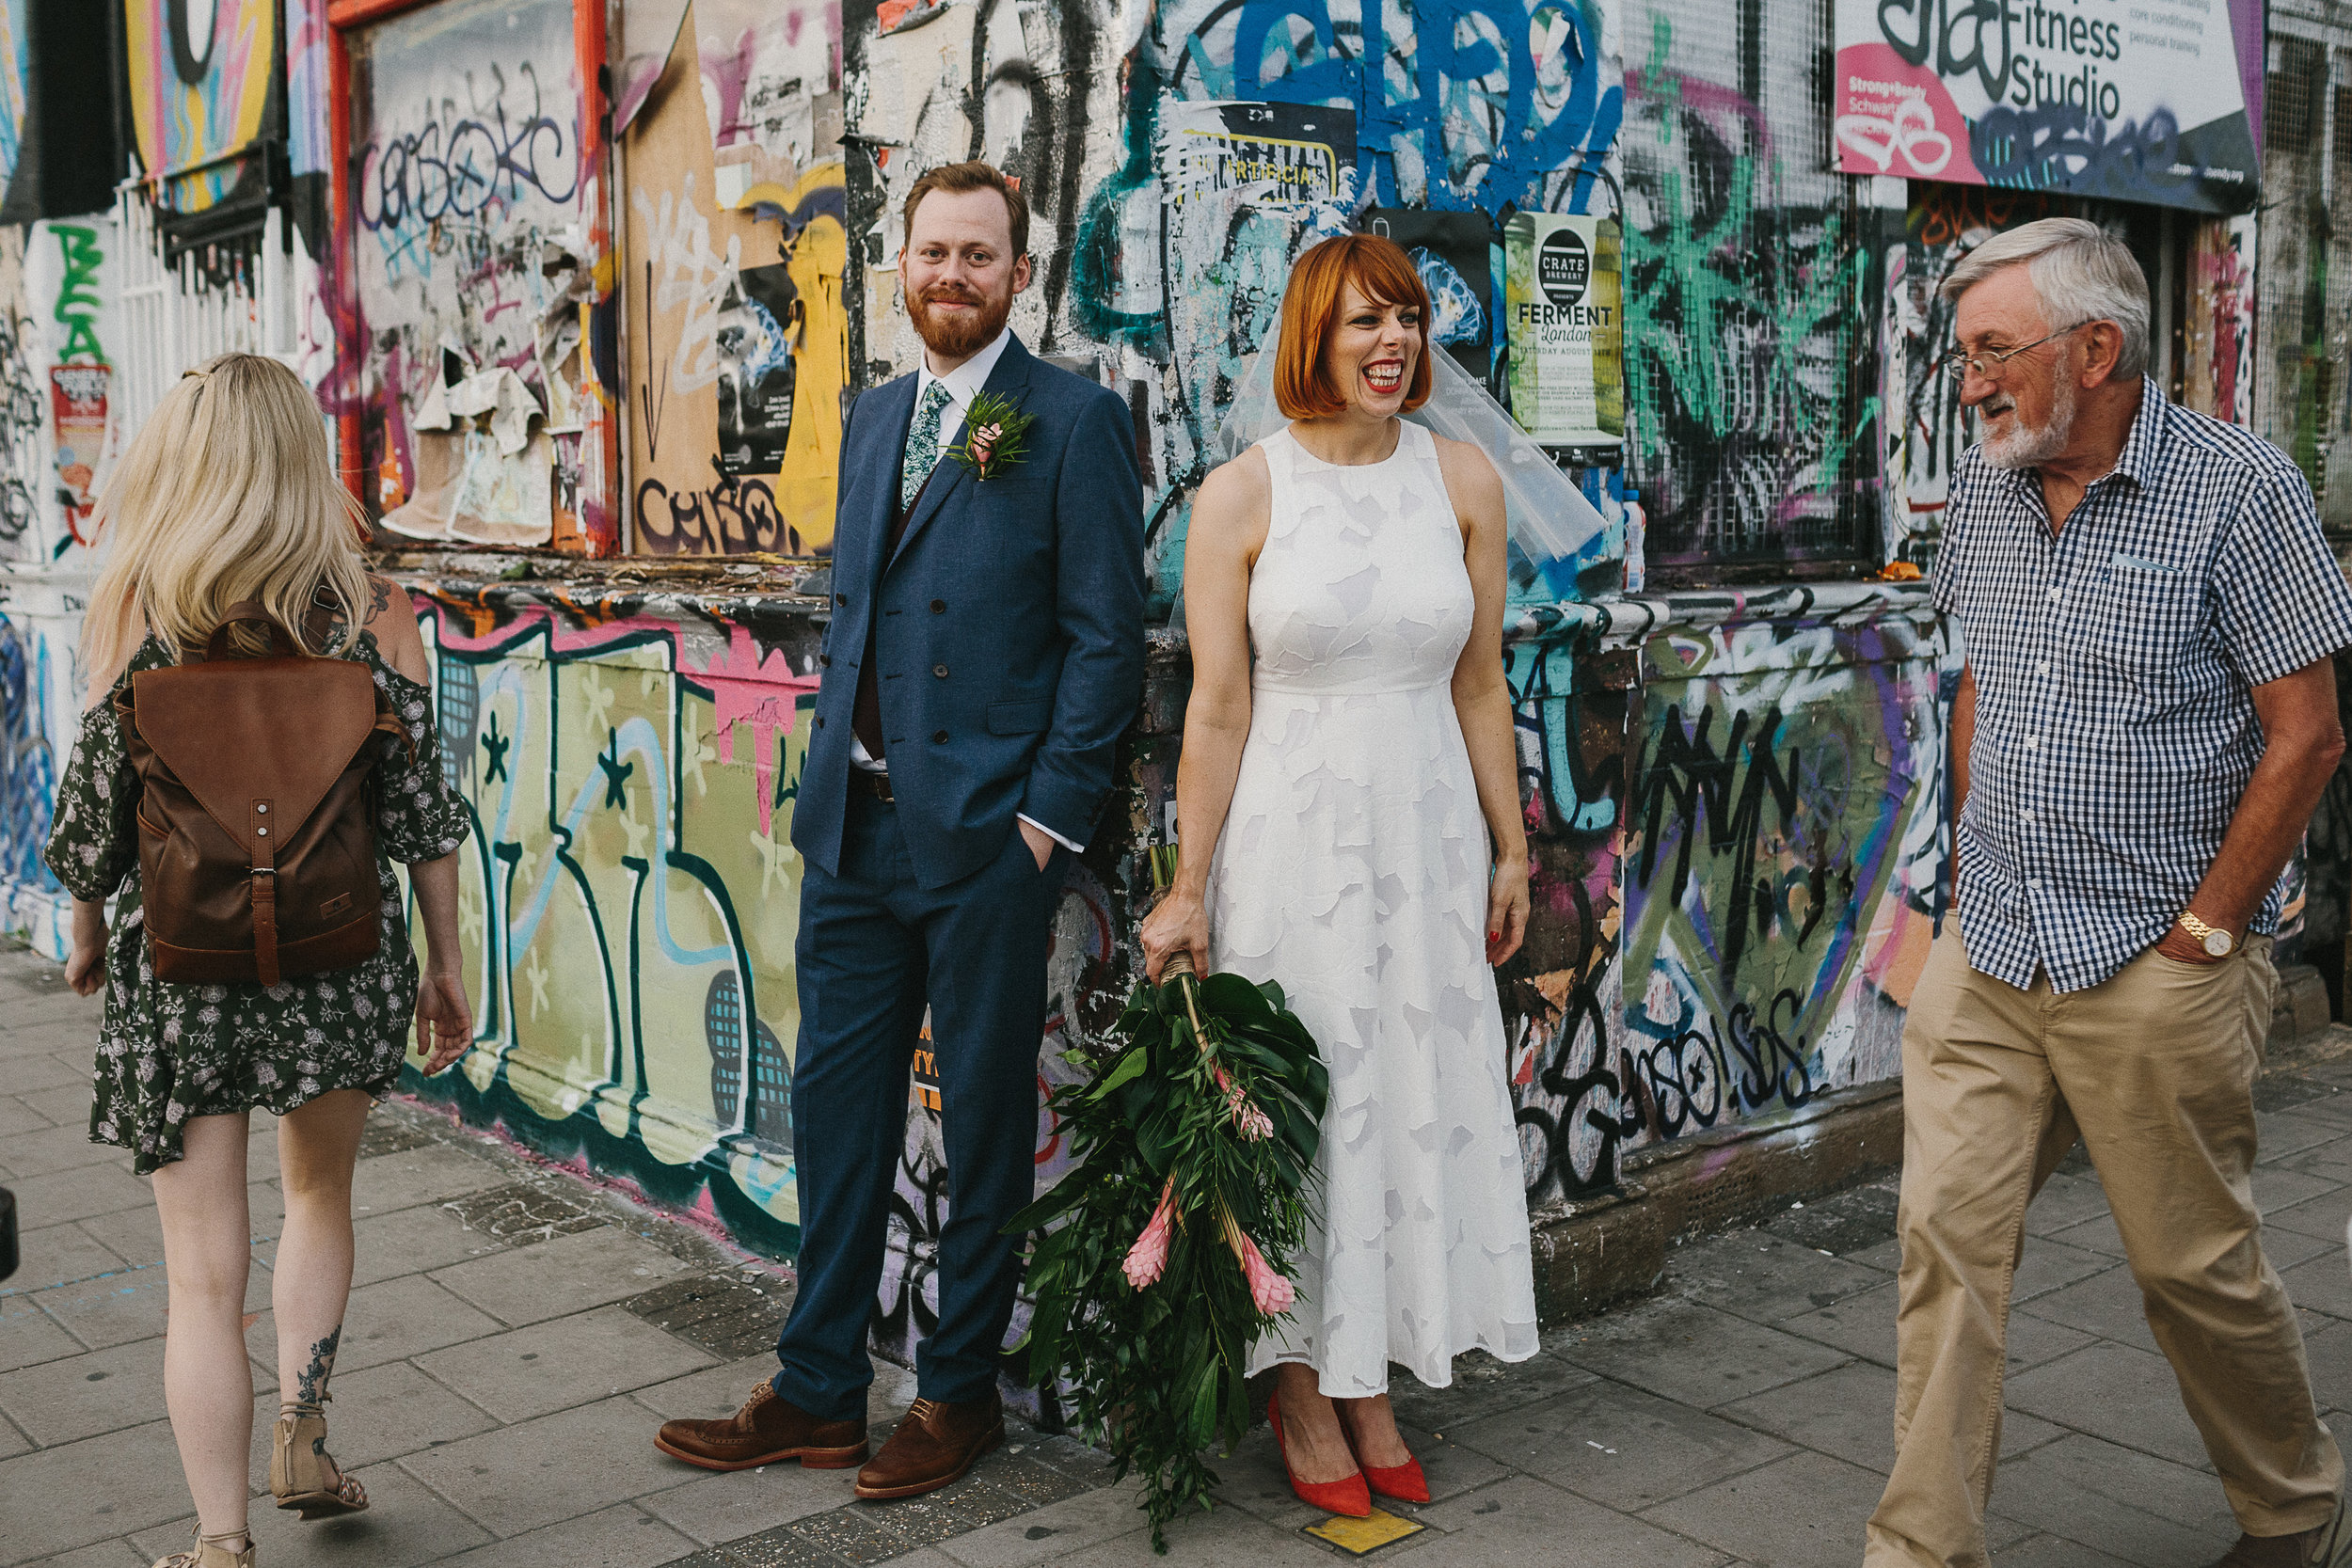 London_Brewery_Wedding_27.JPG